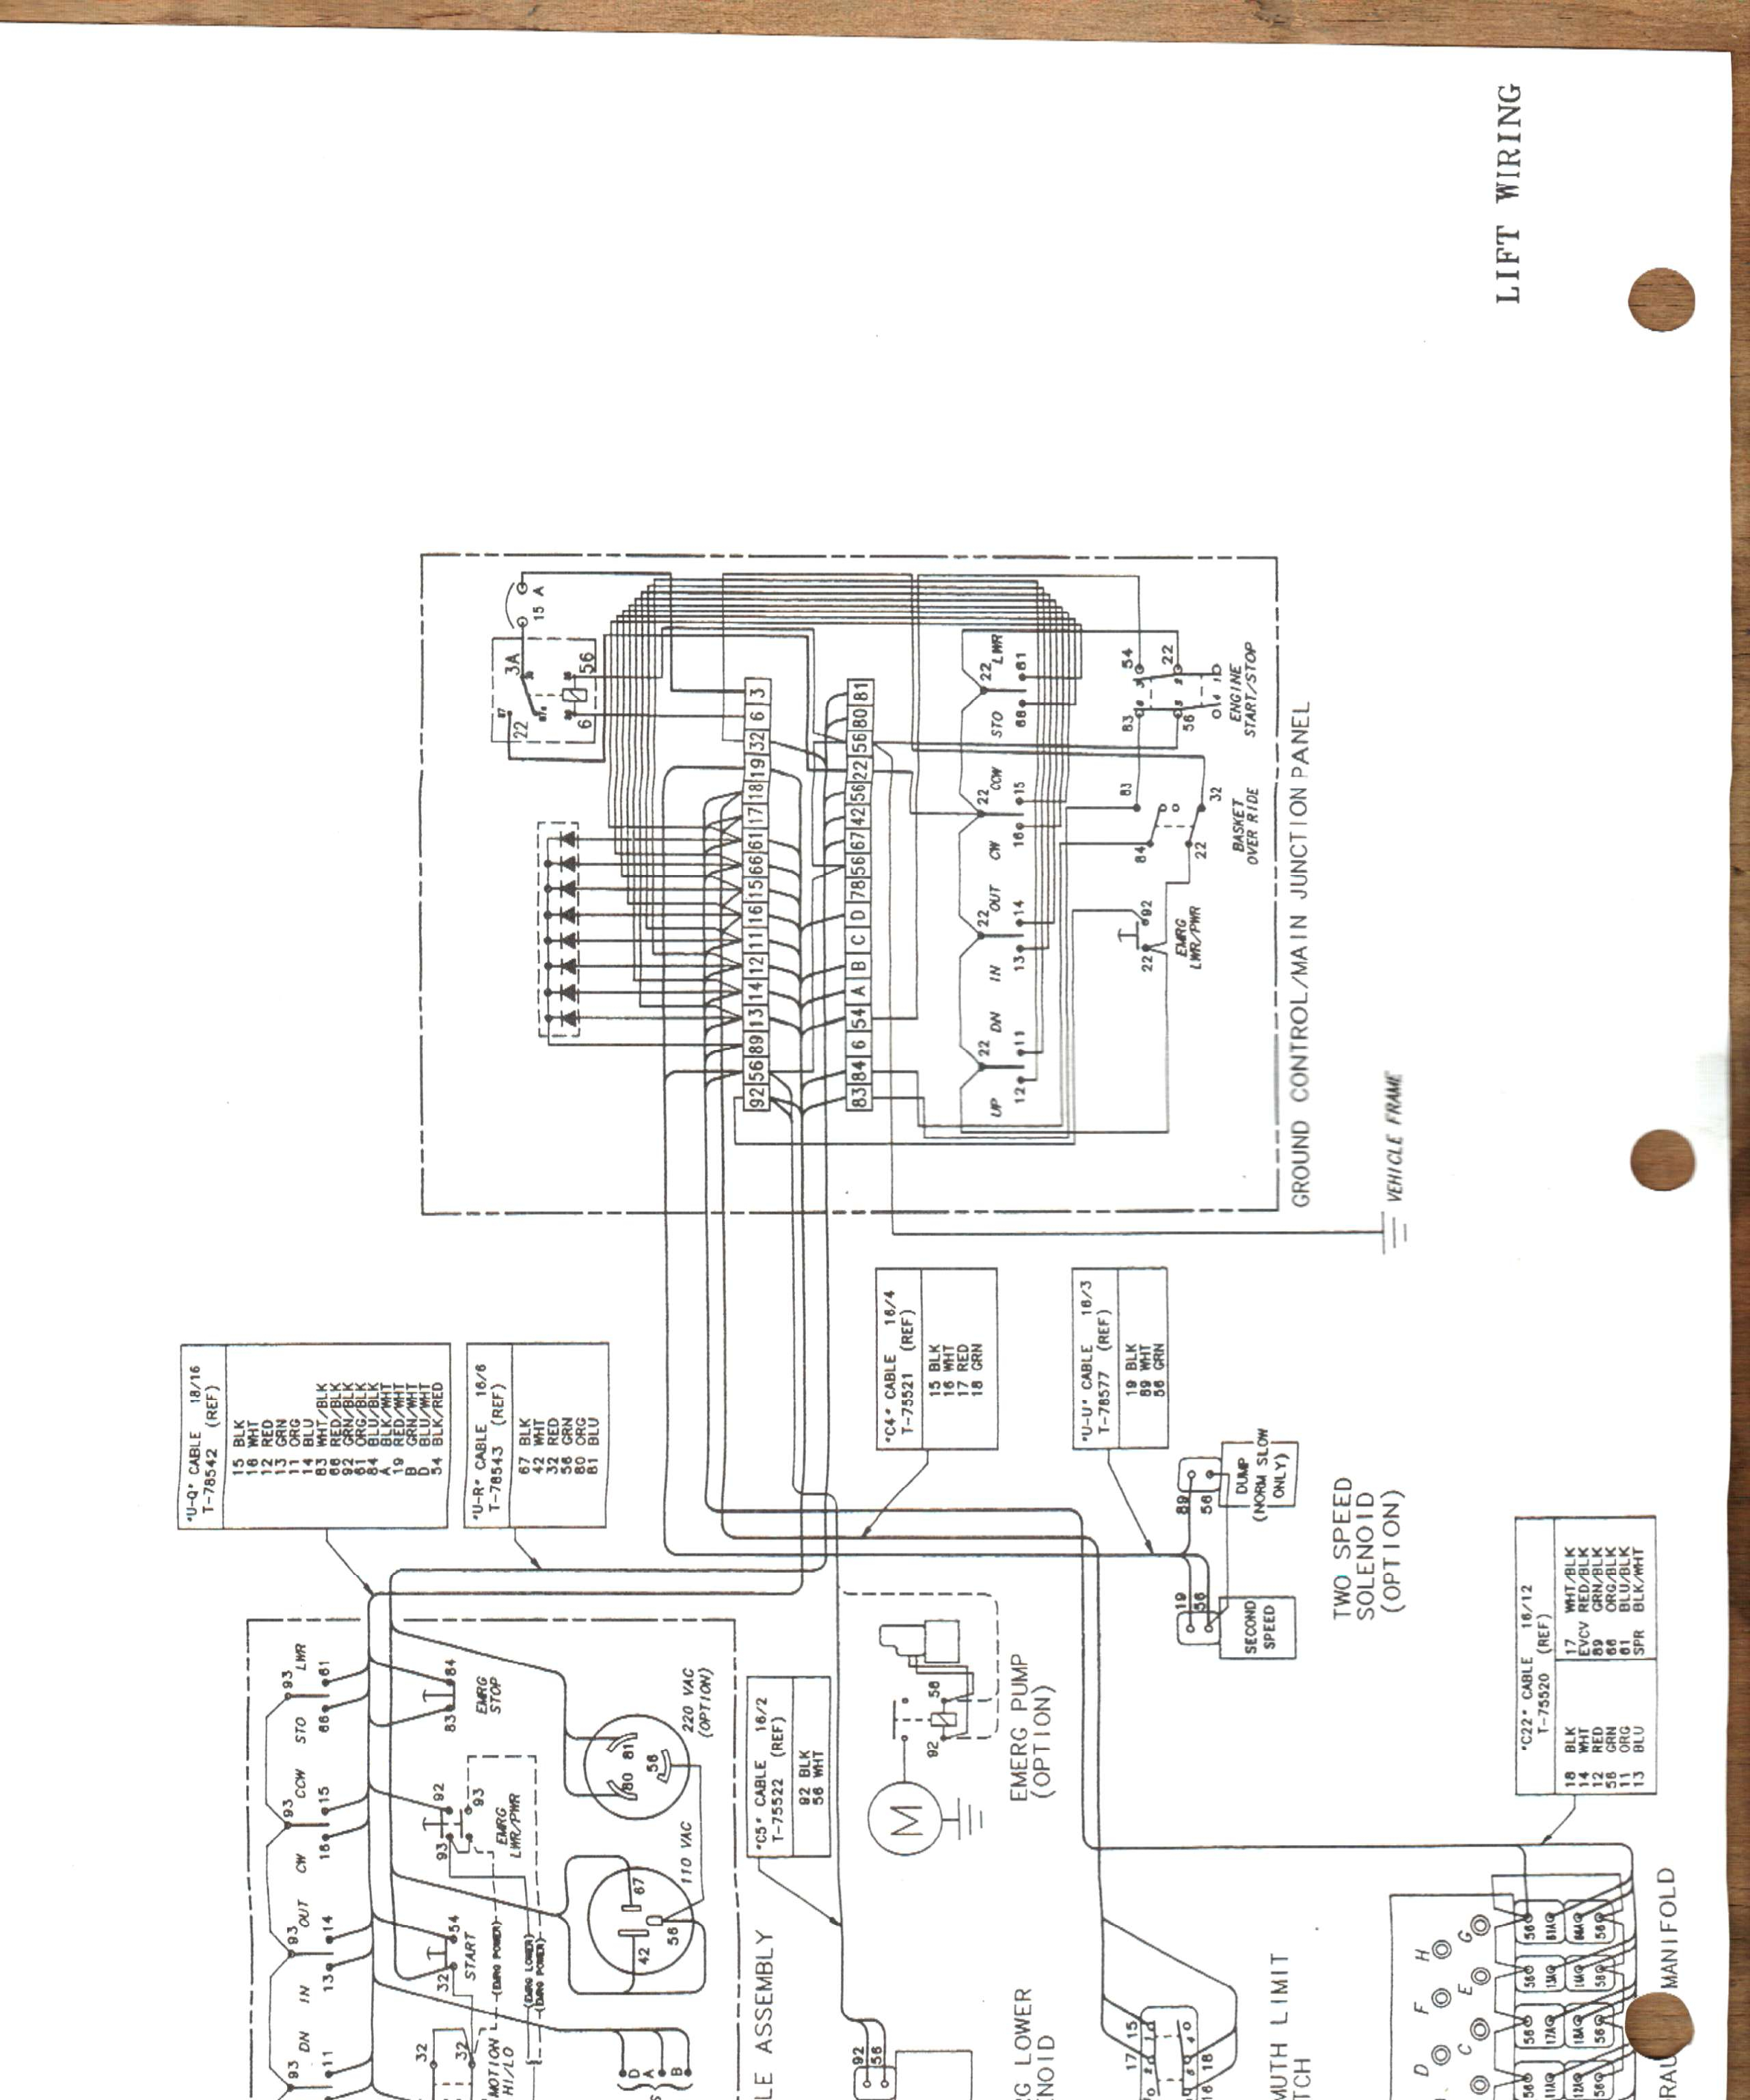 Raven Wiring Diagram | Wiring Diagram on raven plumbing diagrams, raven drawings, raven wiring harness, raven sketches,